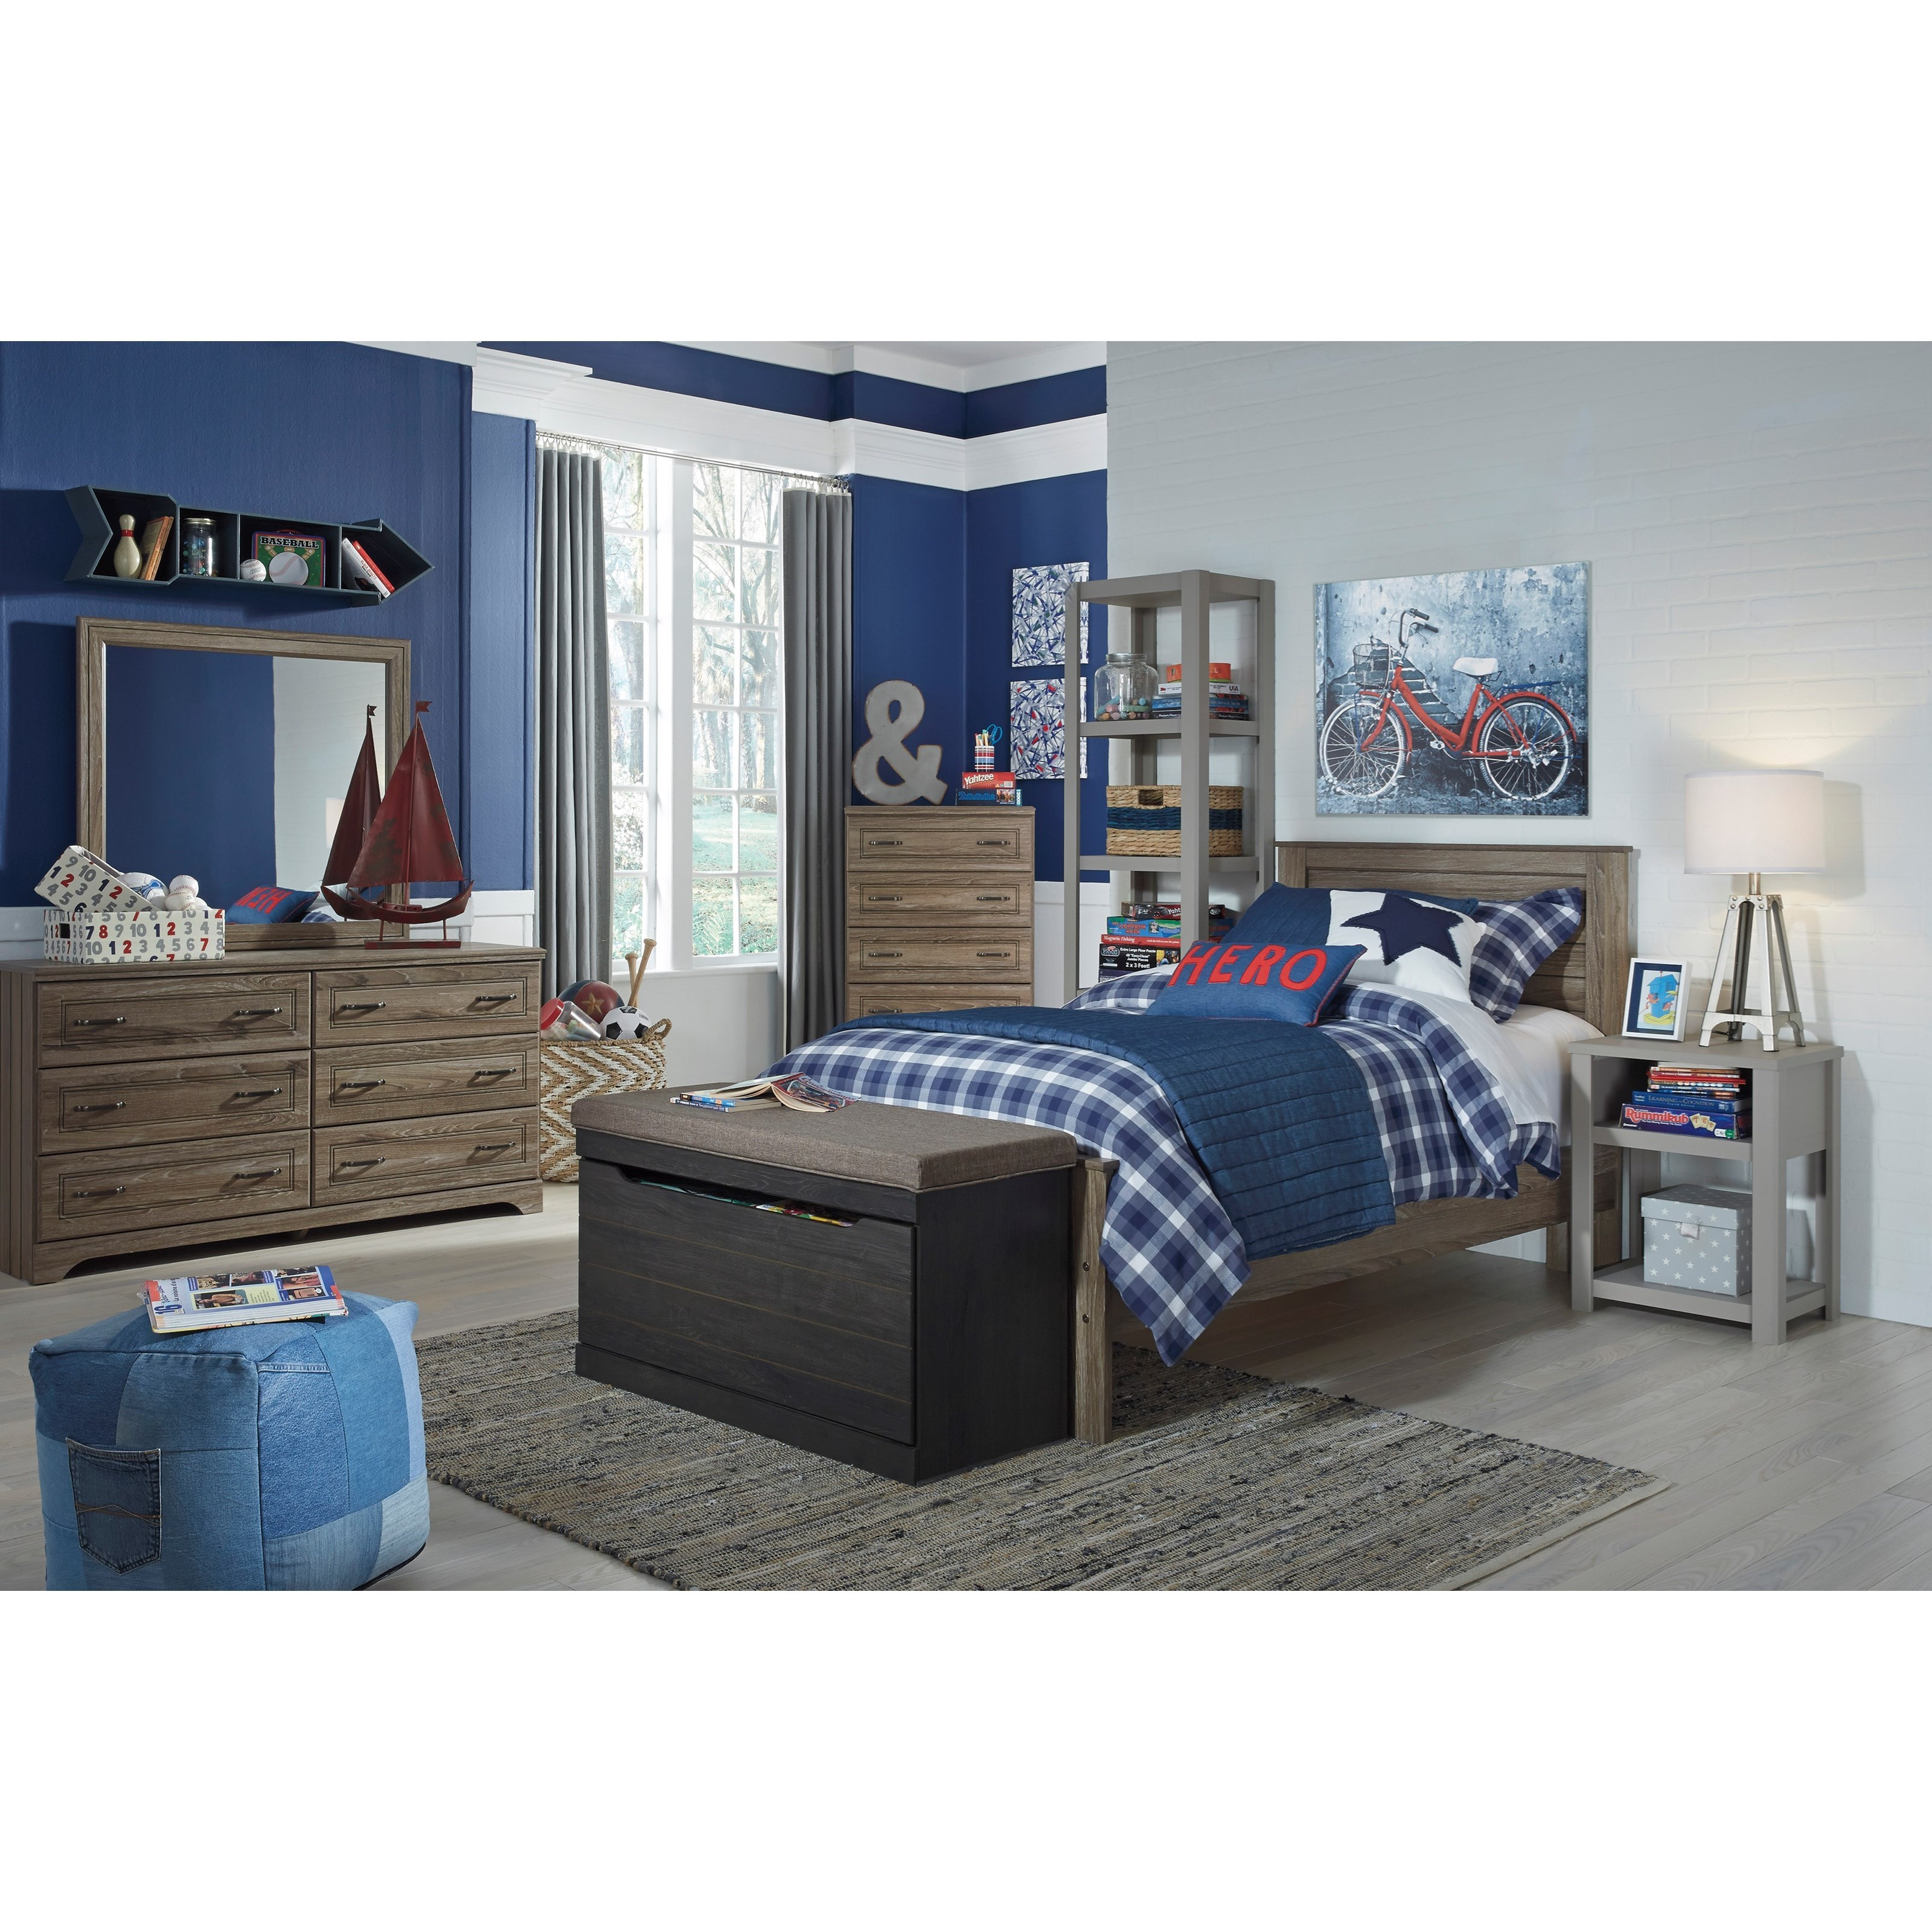 Benchcraft Javarin Twin Panel Bed Virginia Furniture